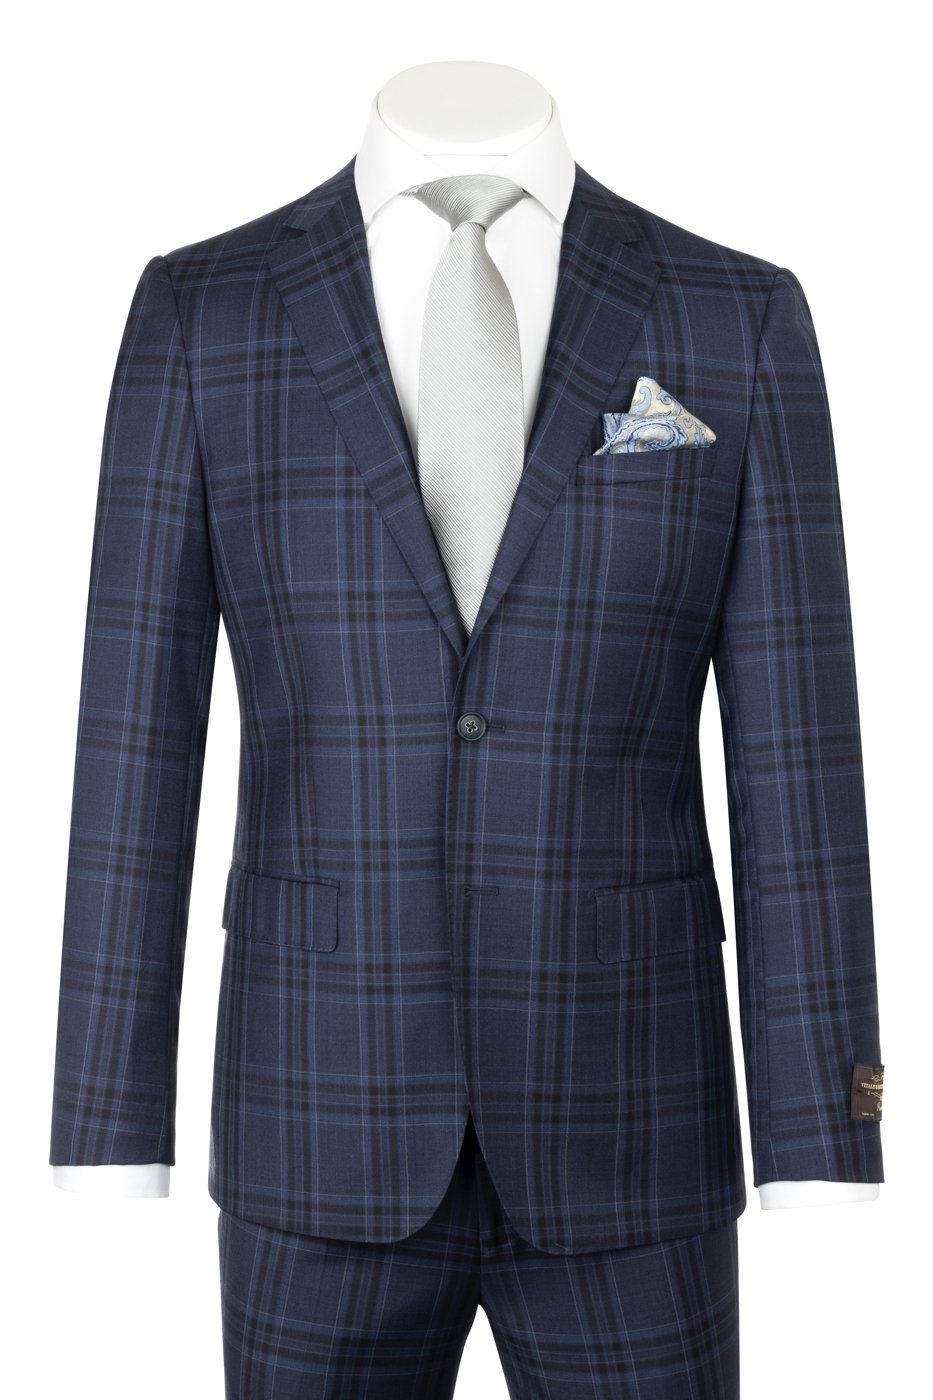 Porto Slim Fit, New Blue with Black & White stripe windowpane, Pure Wool Suit by VITALE BARBERIS CANONICO Cloth by Canaletto Menswear CV86.7651/2